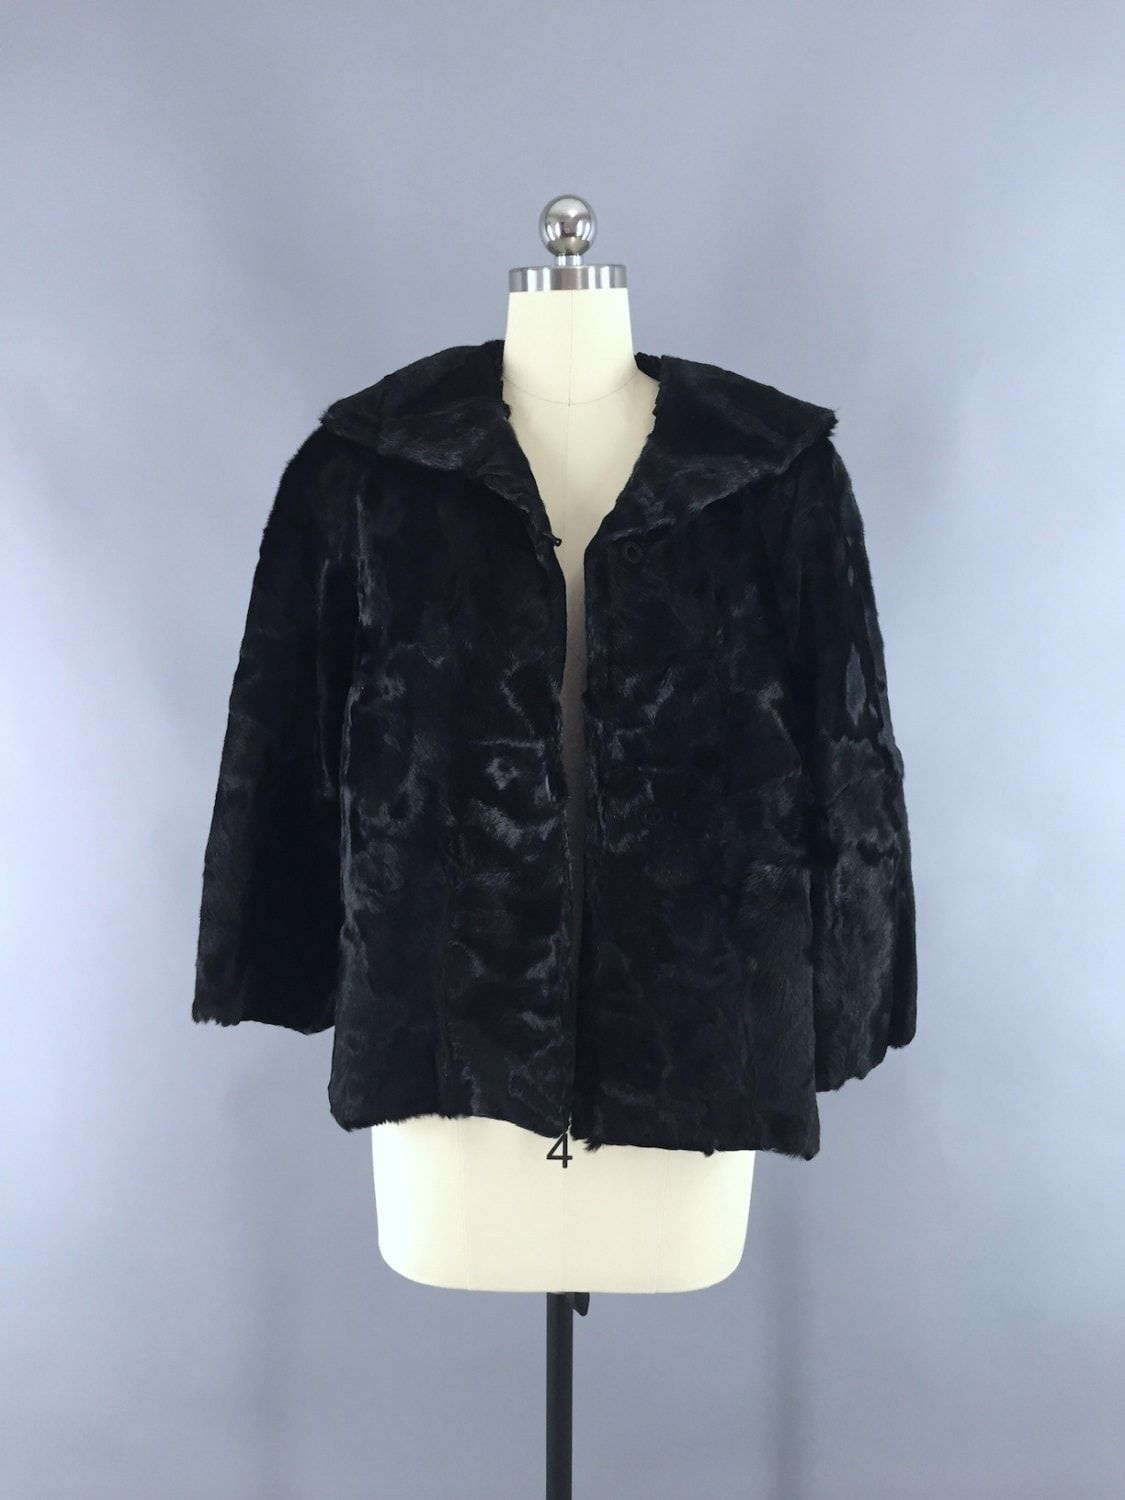 Vintage 1950s Black Fur Jacket Swing Coat